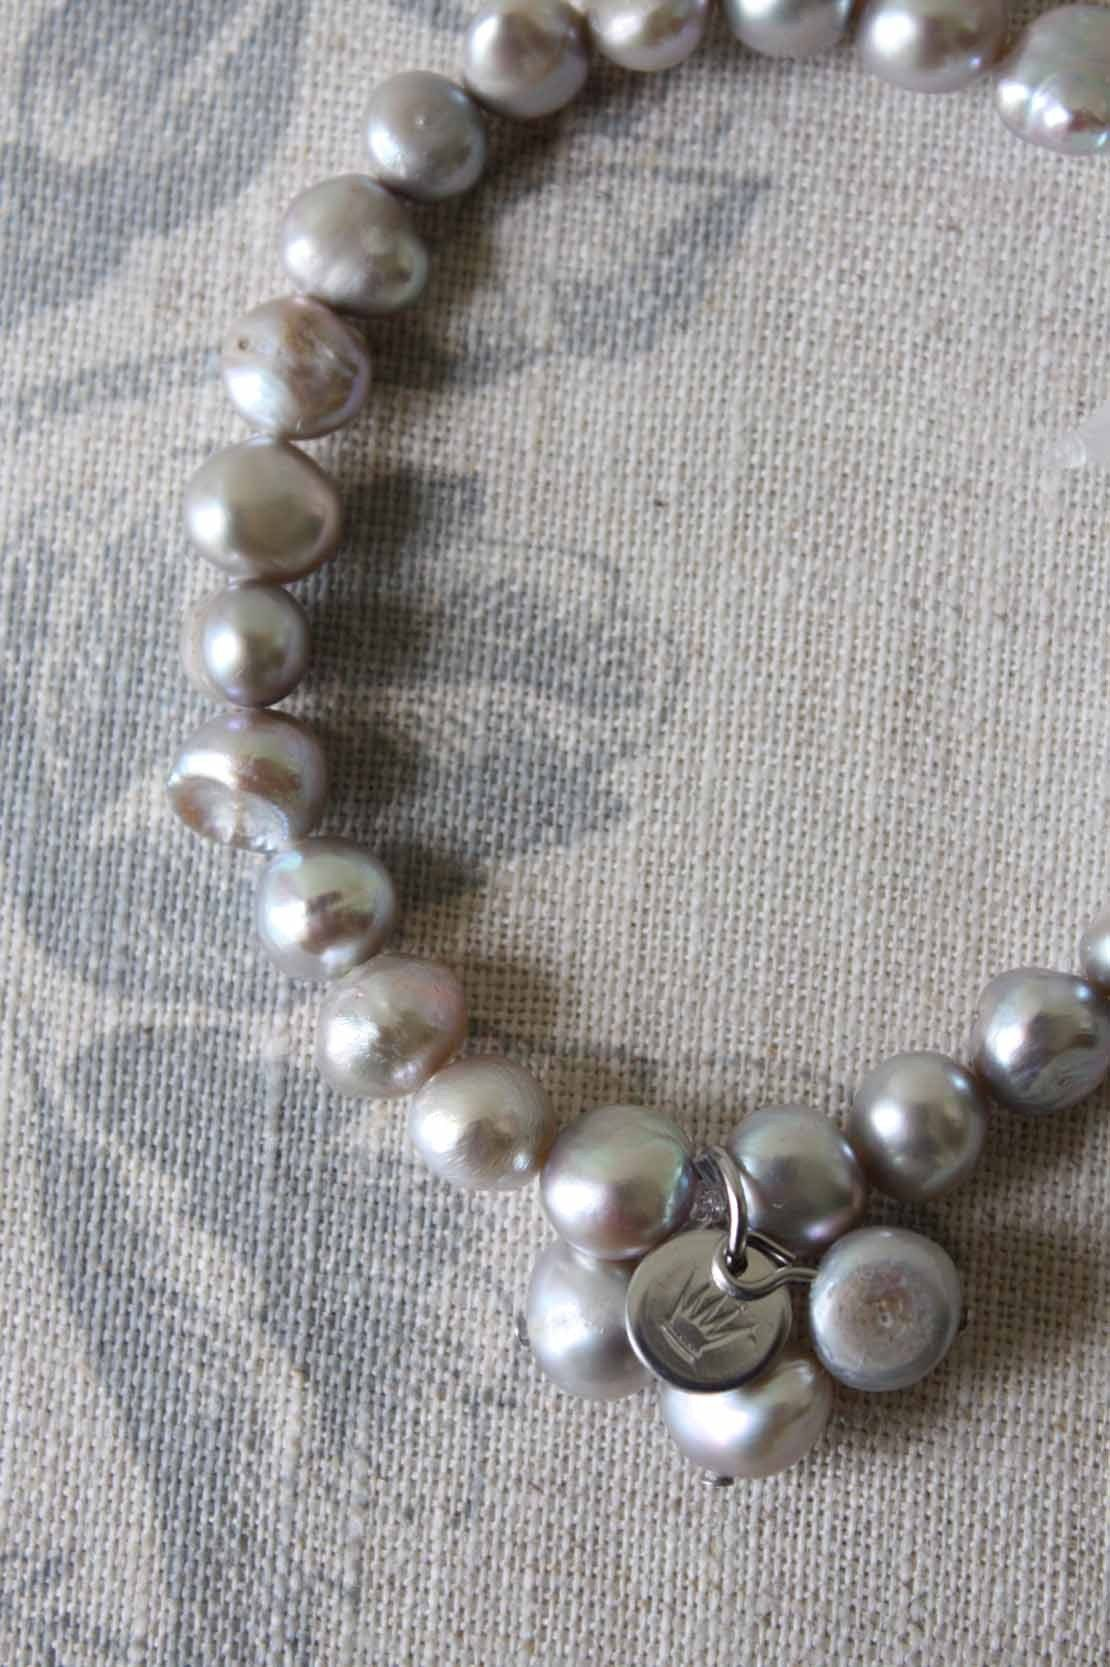 would really like this as it matches a grey pearl necklace I have and its the cheapest grey pearl bracelet I have found